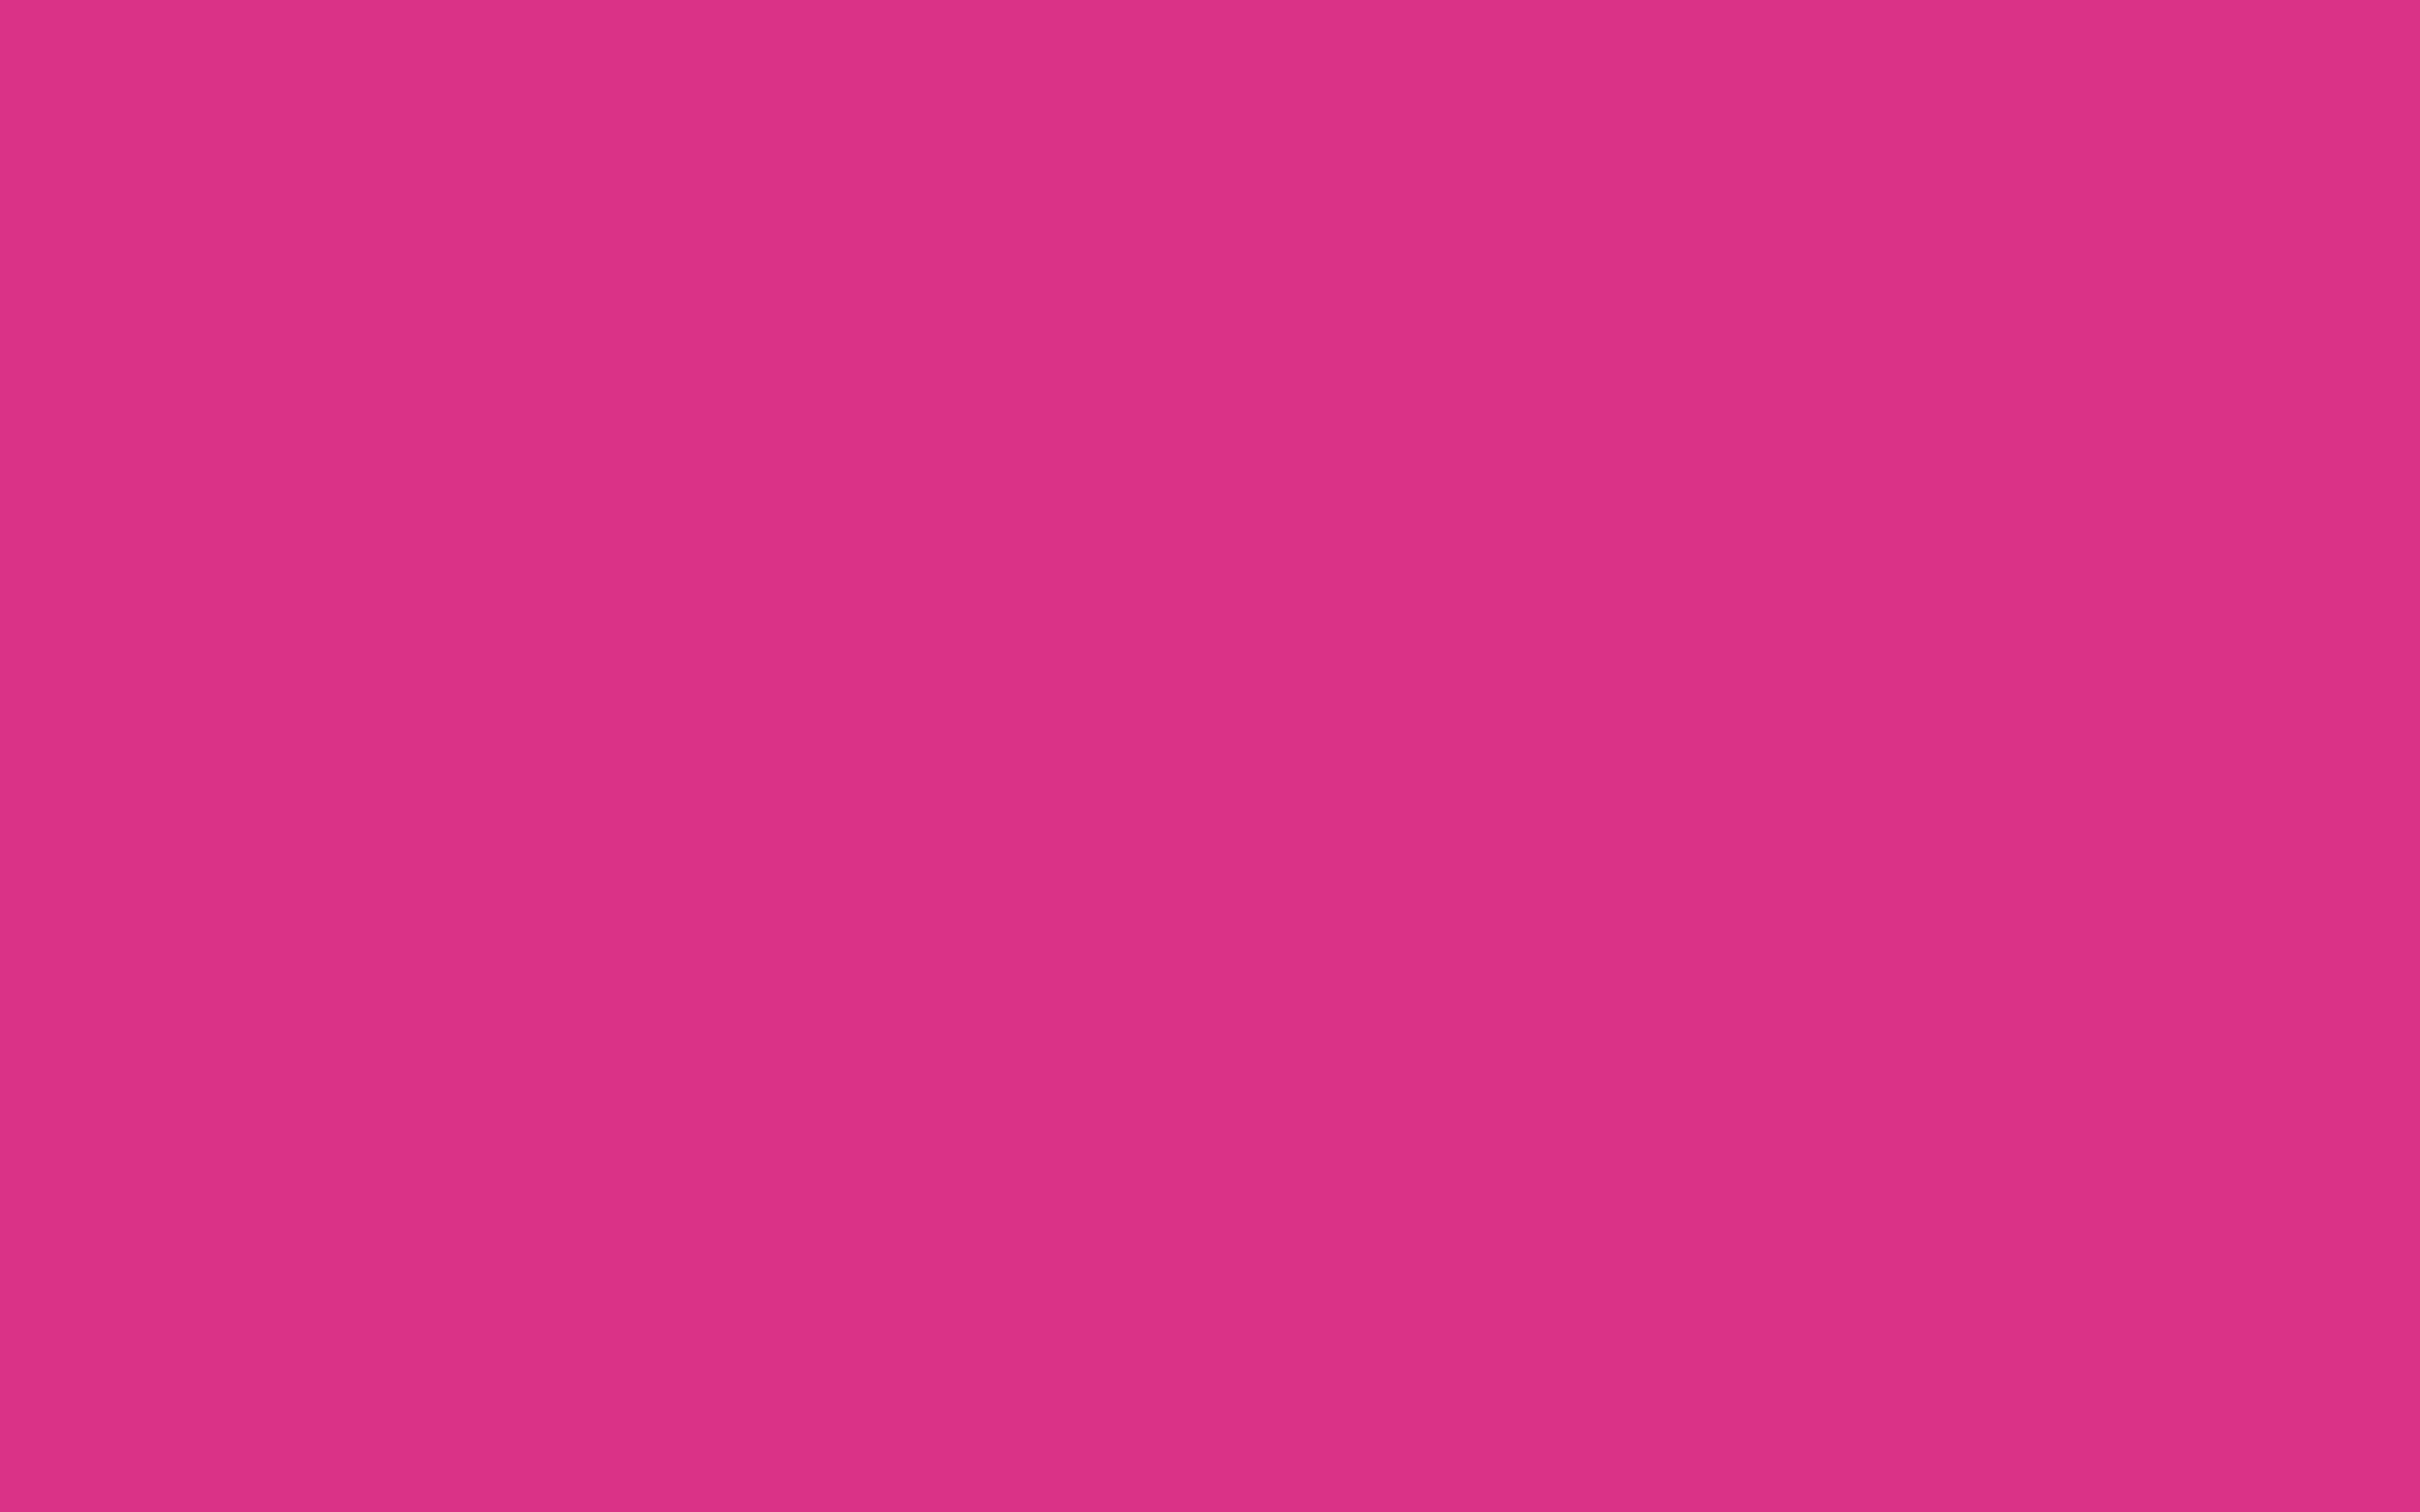 2560x1600 Deep Cerise Solid Color Background